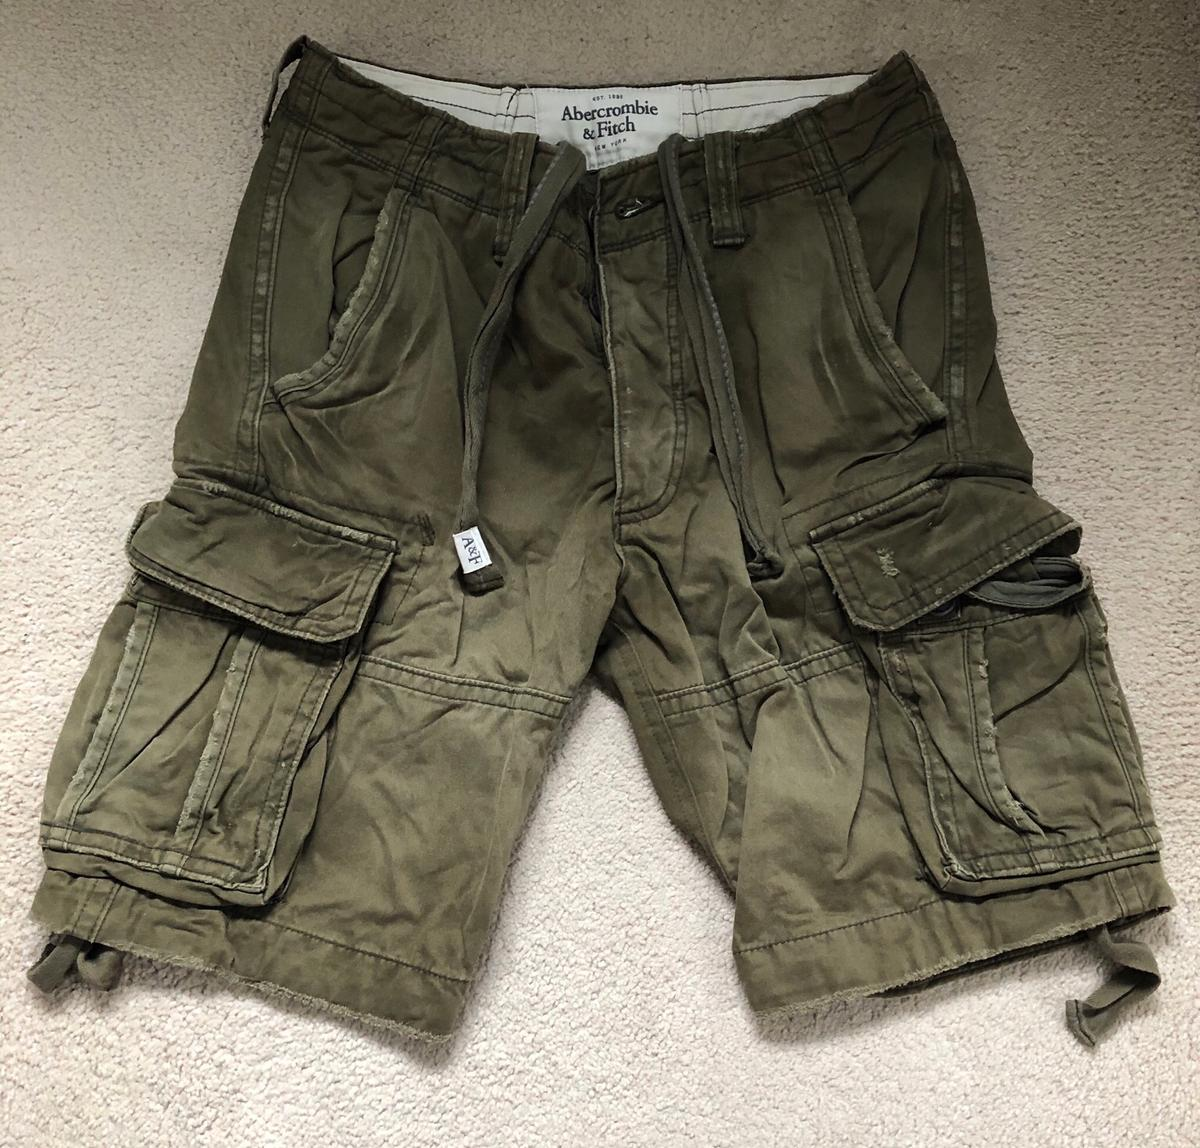 abercrombie and fitch cargo pants